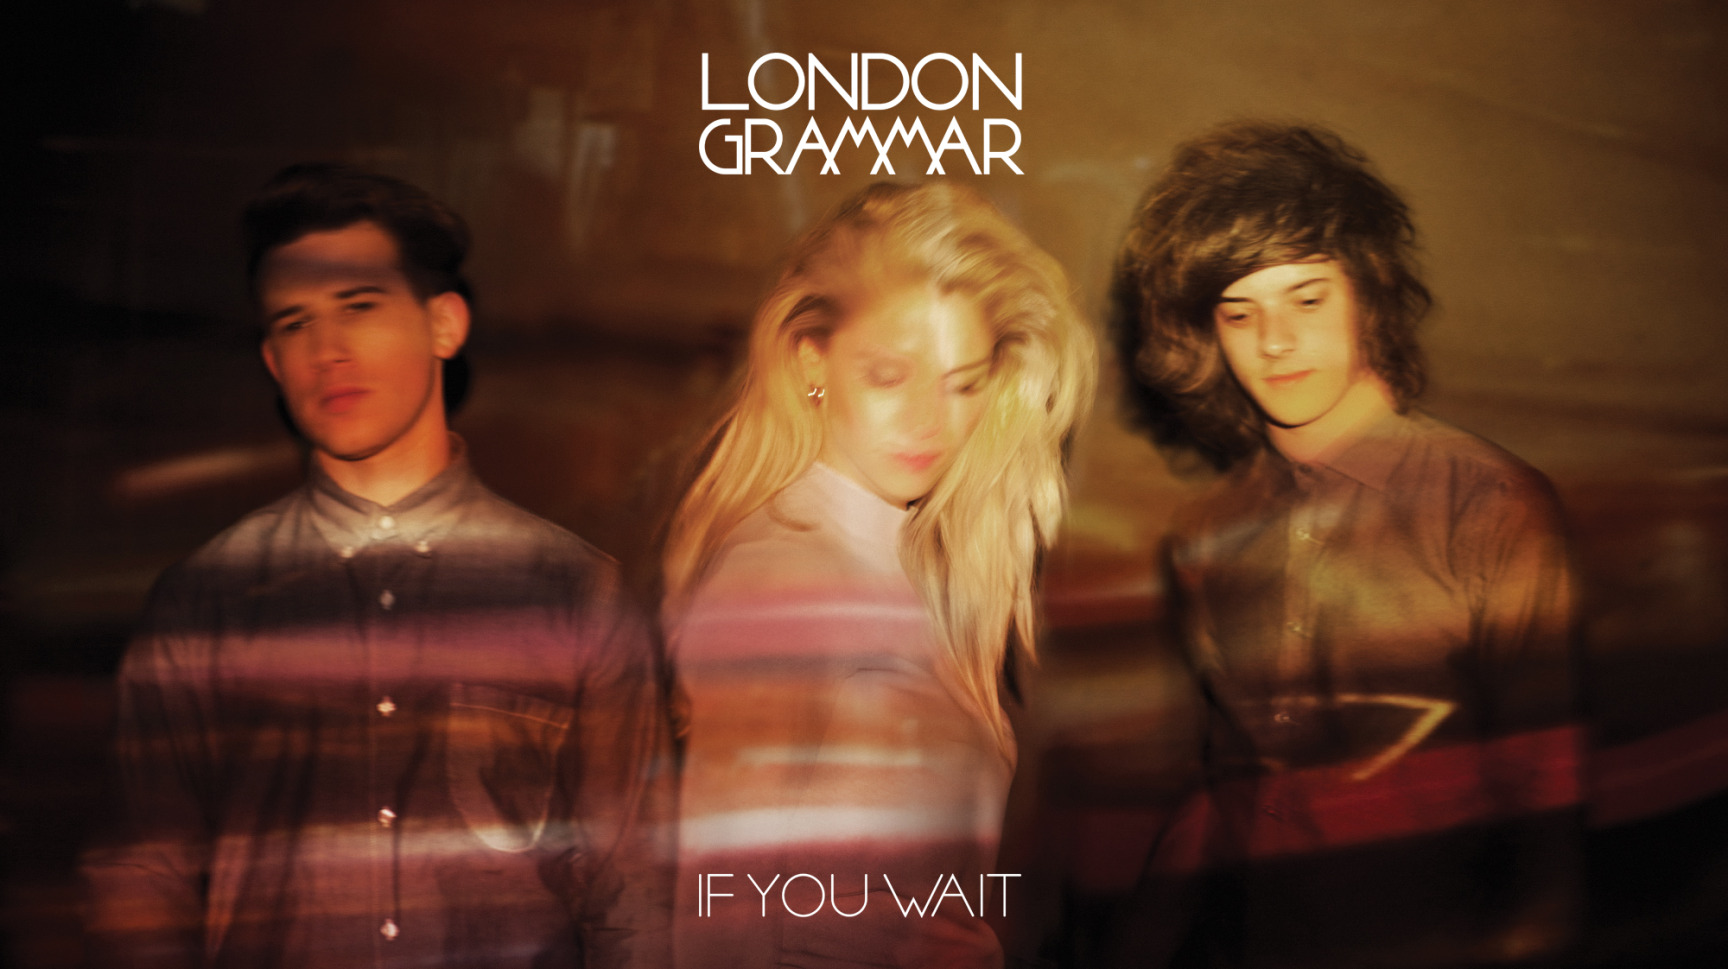 Music<br /><strong>London Grammar - If You Wait</strong>